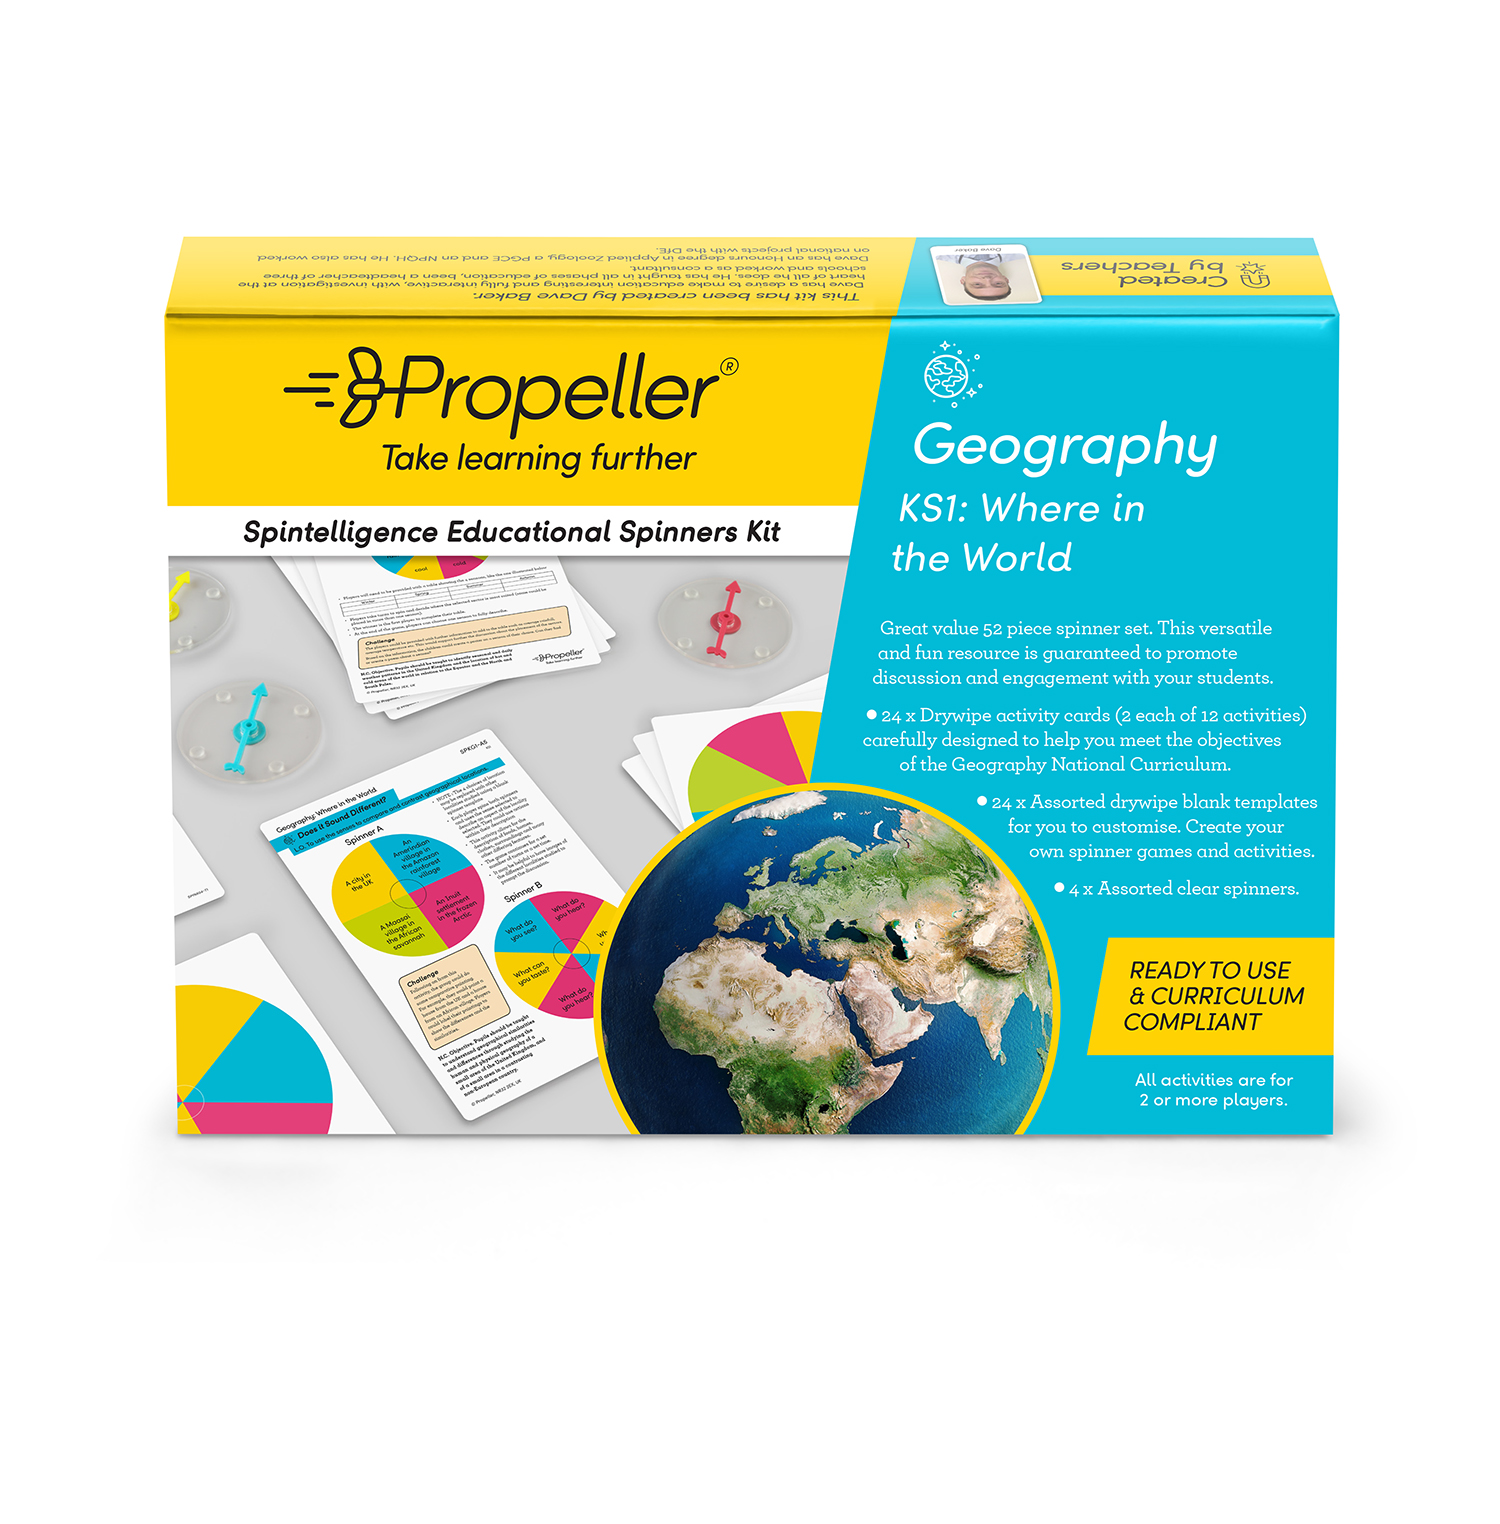 Ks1 where in the world geography spinner kit propeller education spkg1 ks2 where in the world cover freerunsca